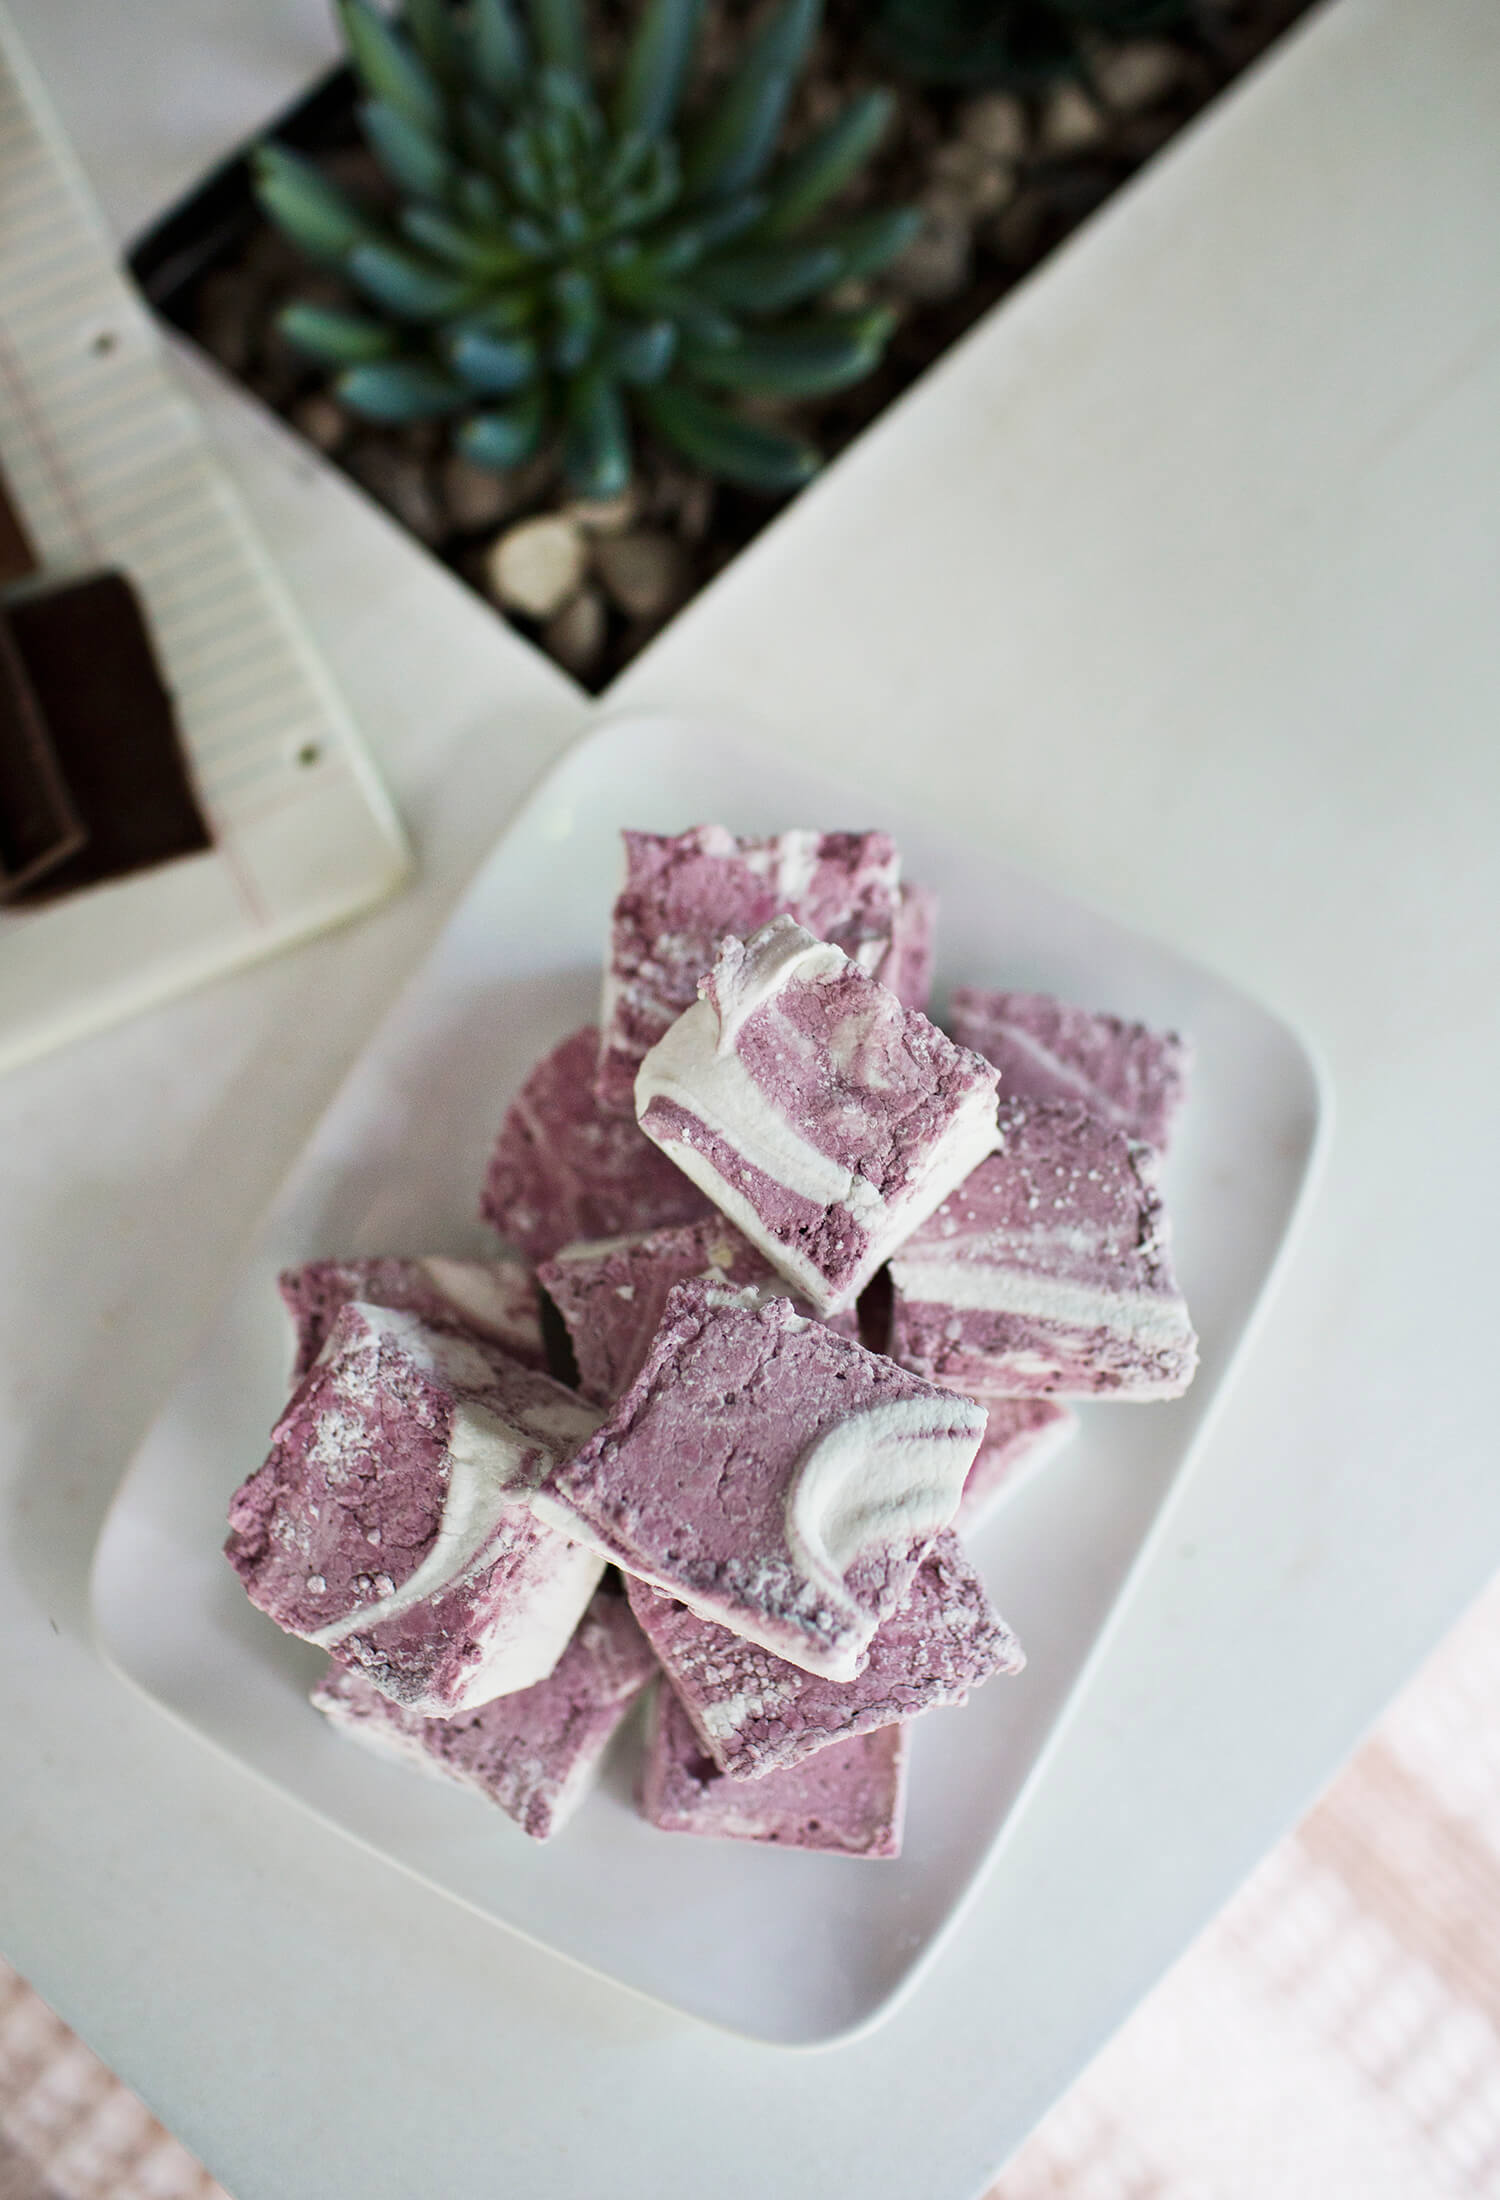 Red Wine Marshmallow recipe (via fitness-4all.com)